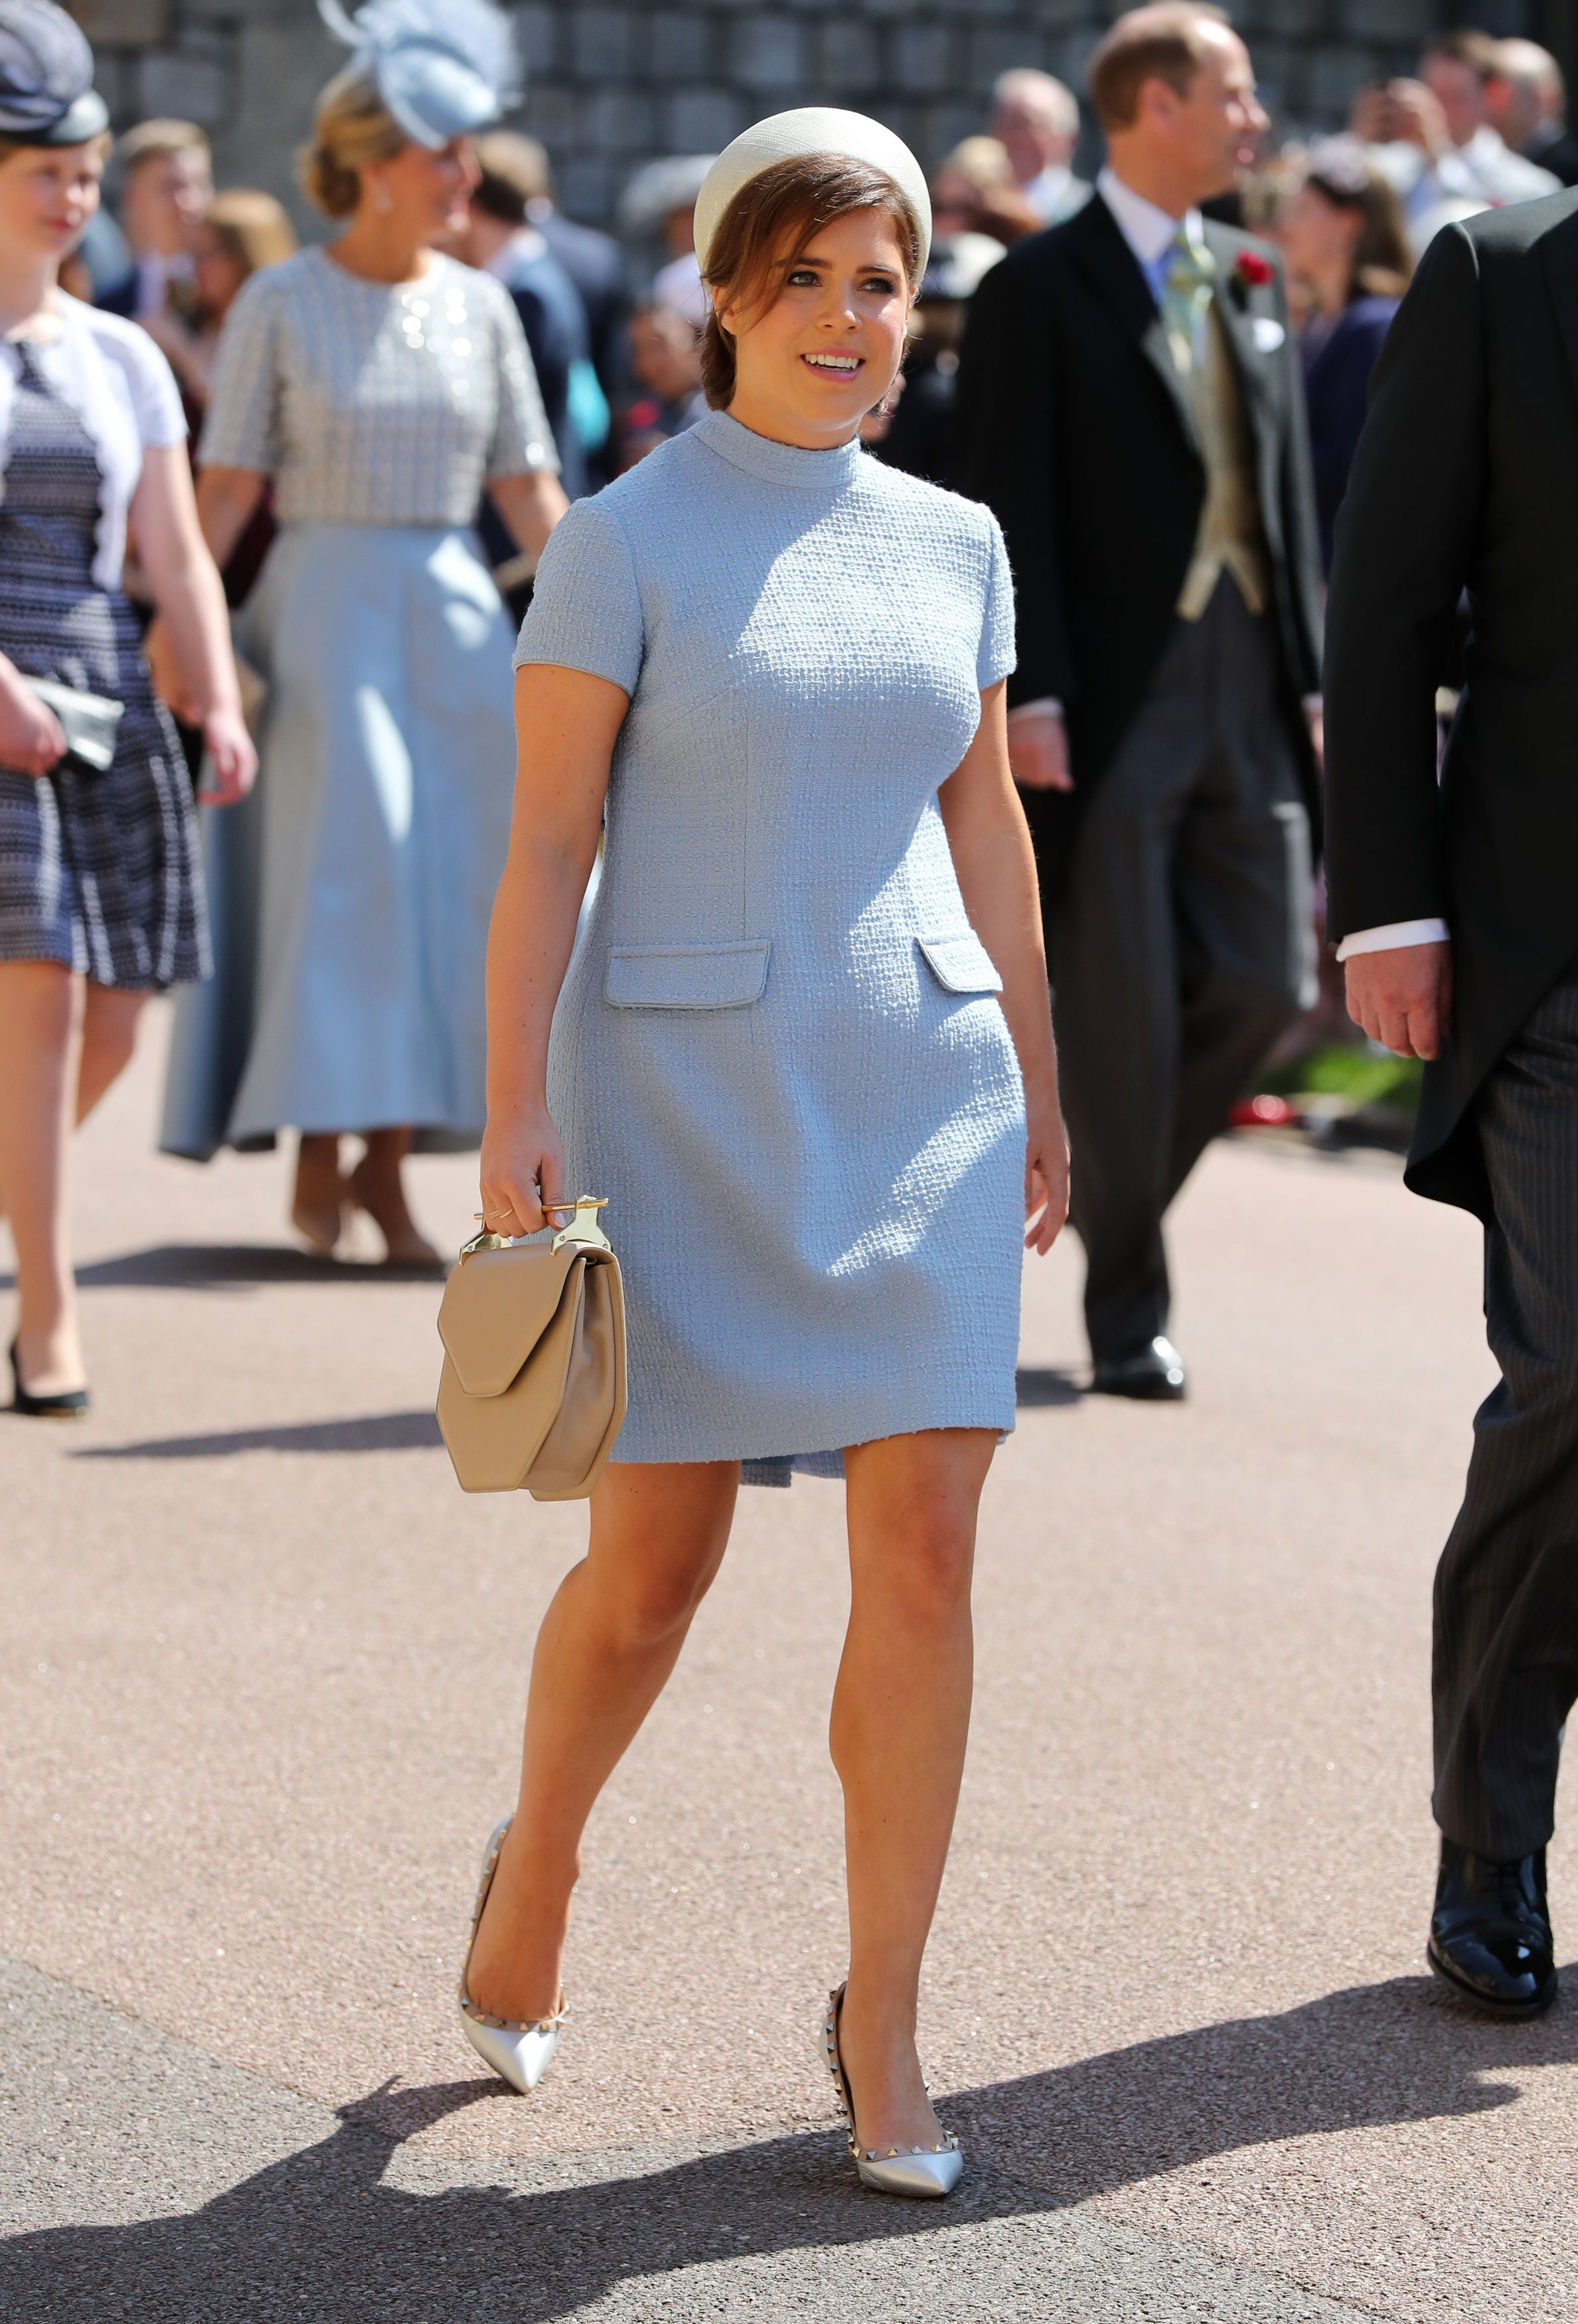 Royal Wedding 2018 Princess Eugenie of York